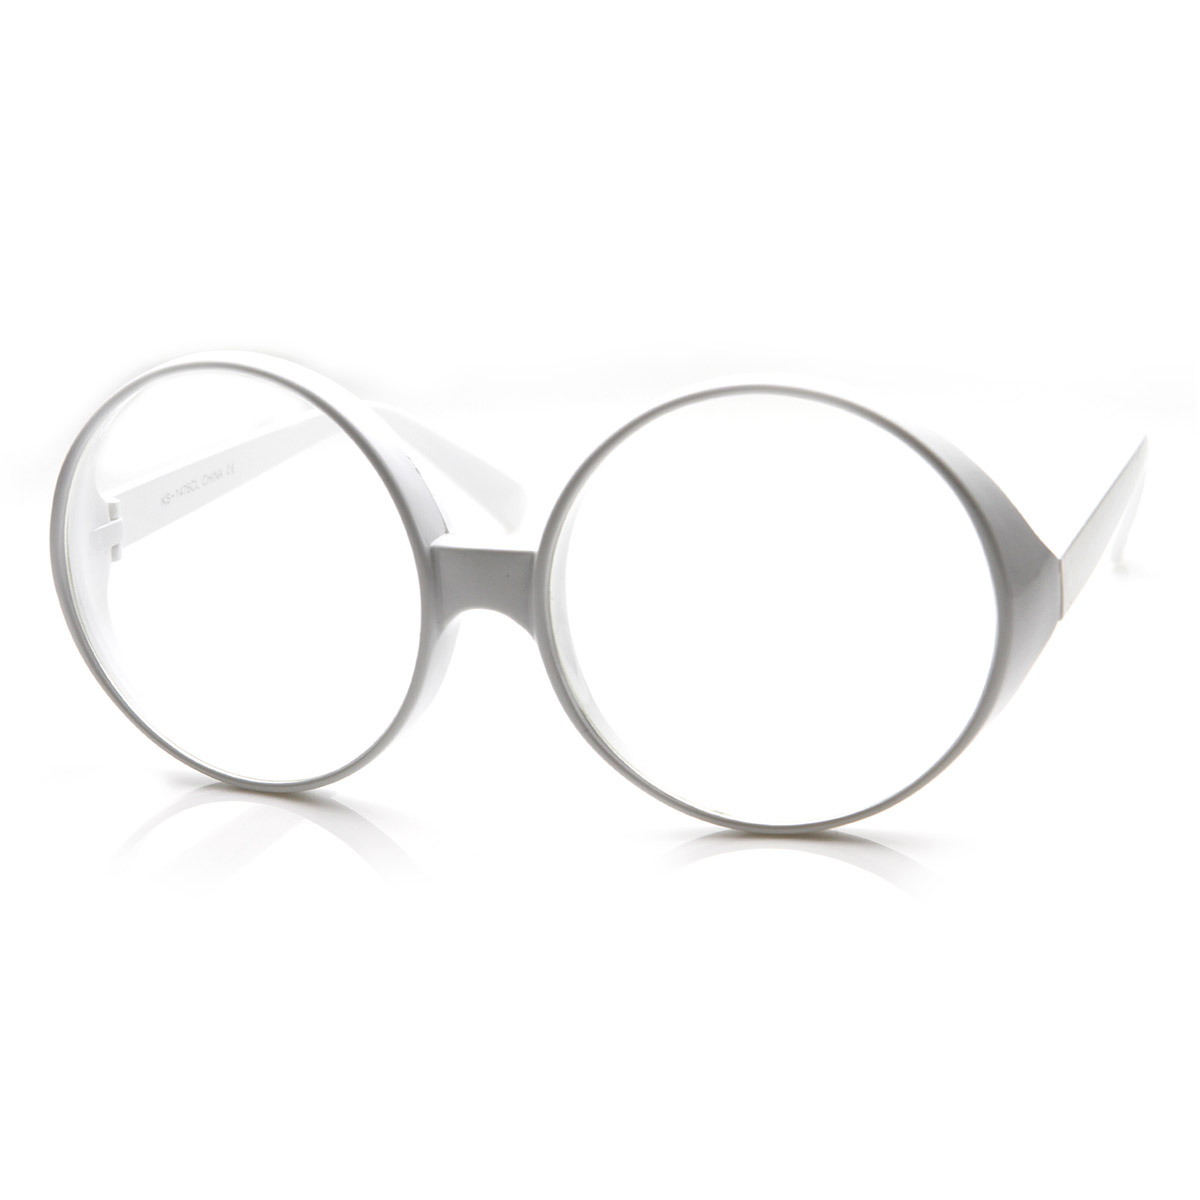 Super-Large-Oversized-Thick-Frame-Circle-Round-Clear-Lens ...